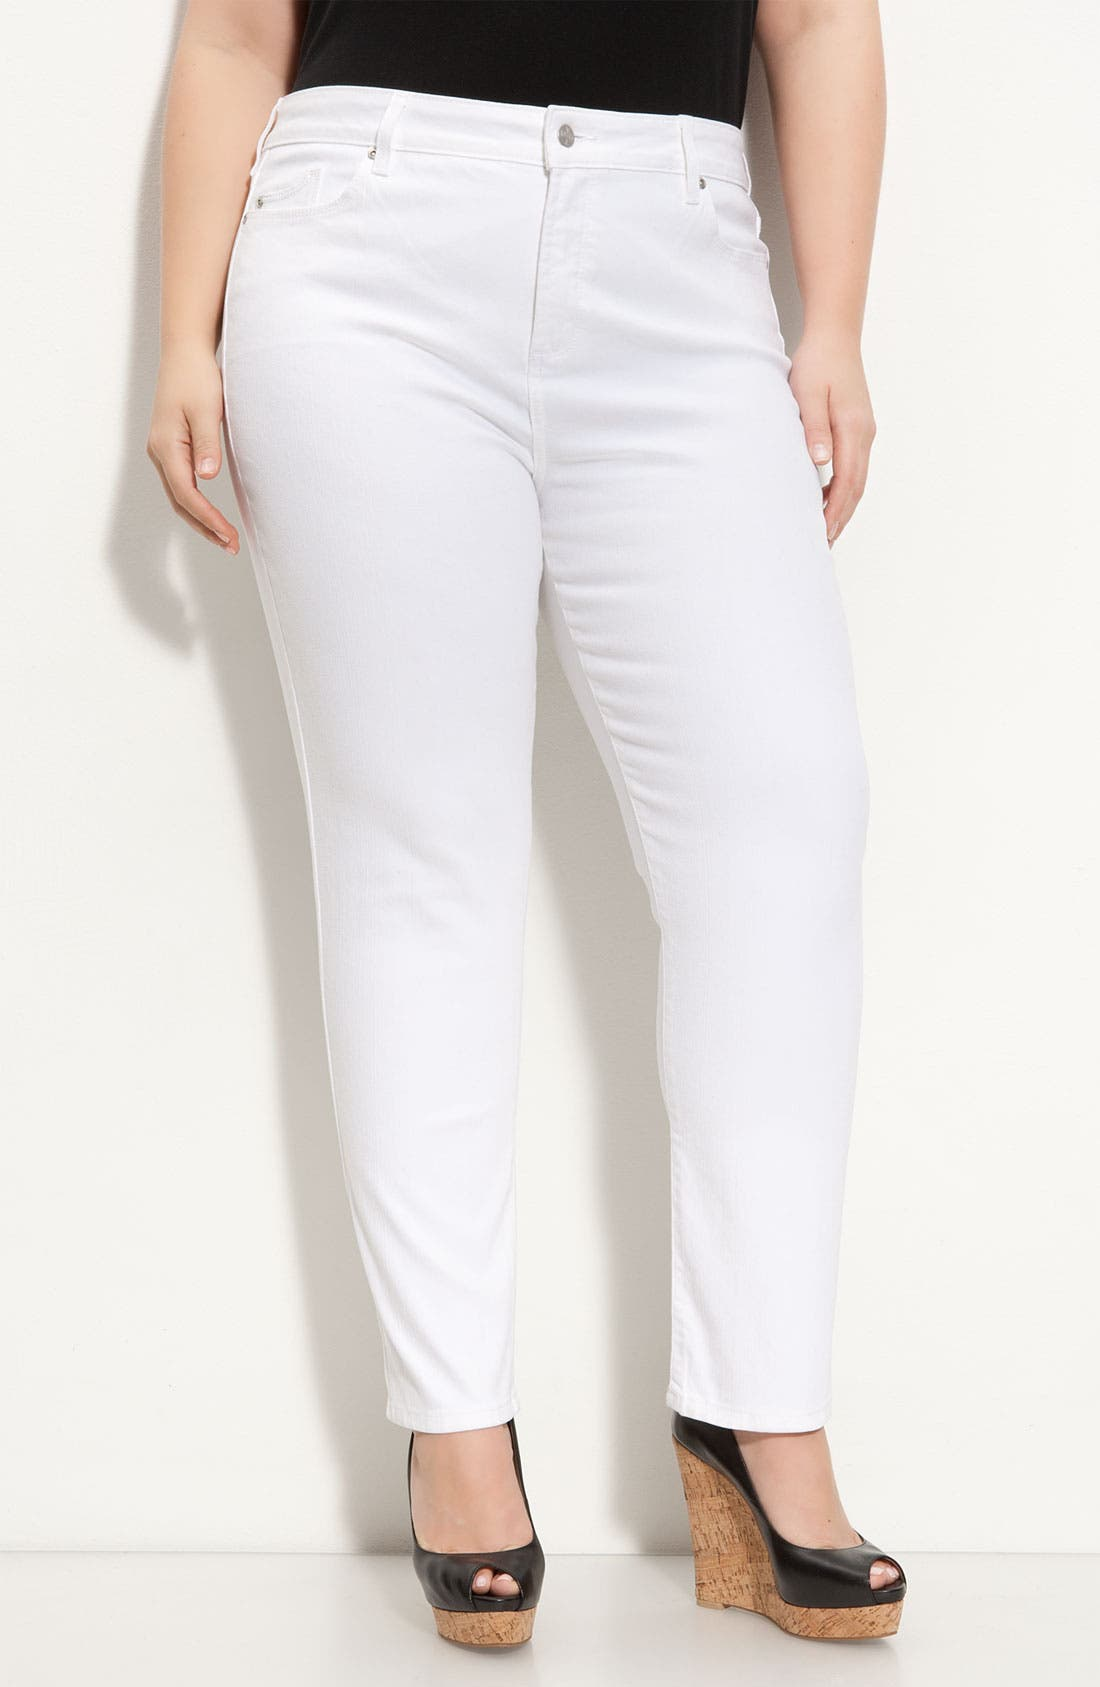 Main Image - NYDJ 'Alisha' Skinny Stretch Jeans (Plus)